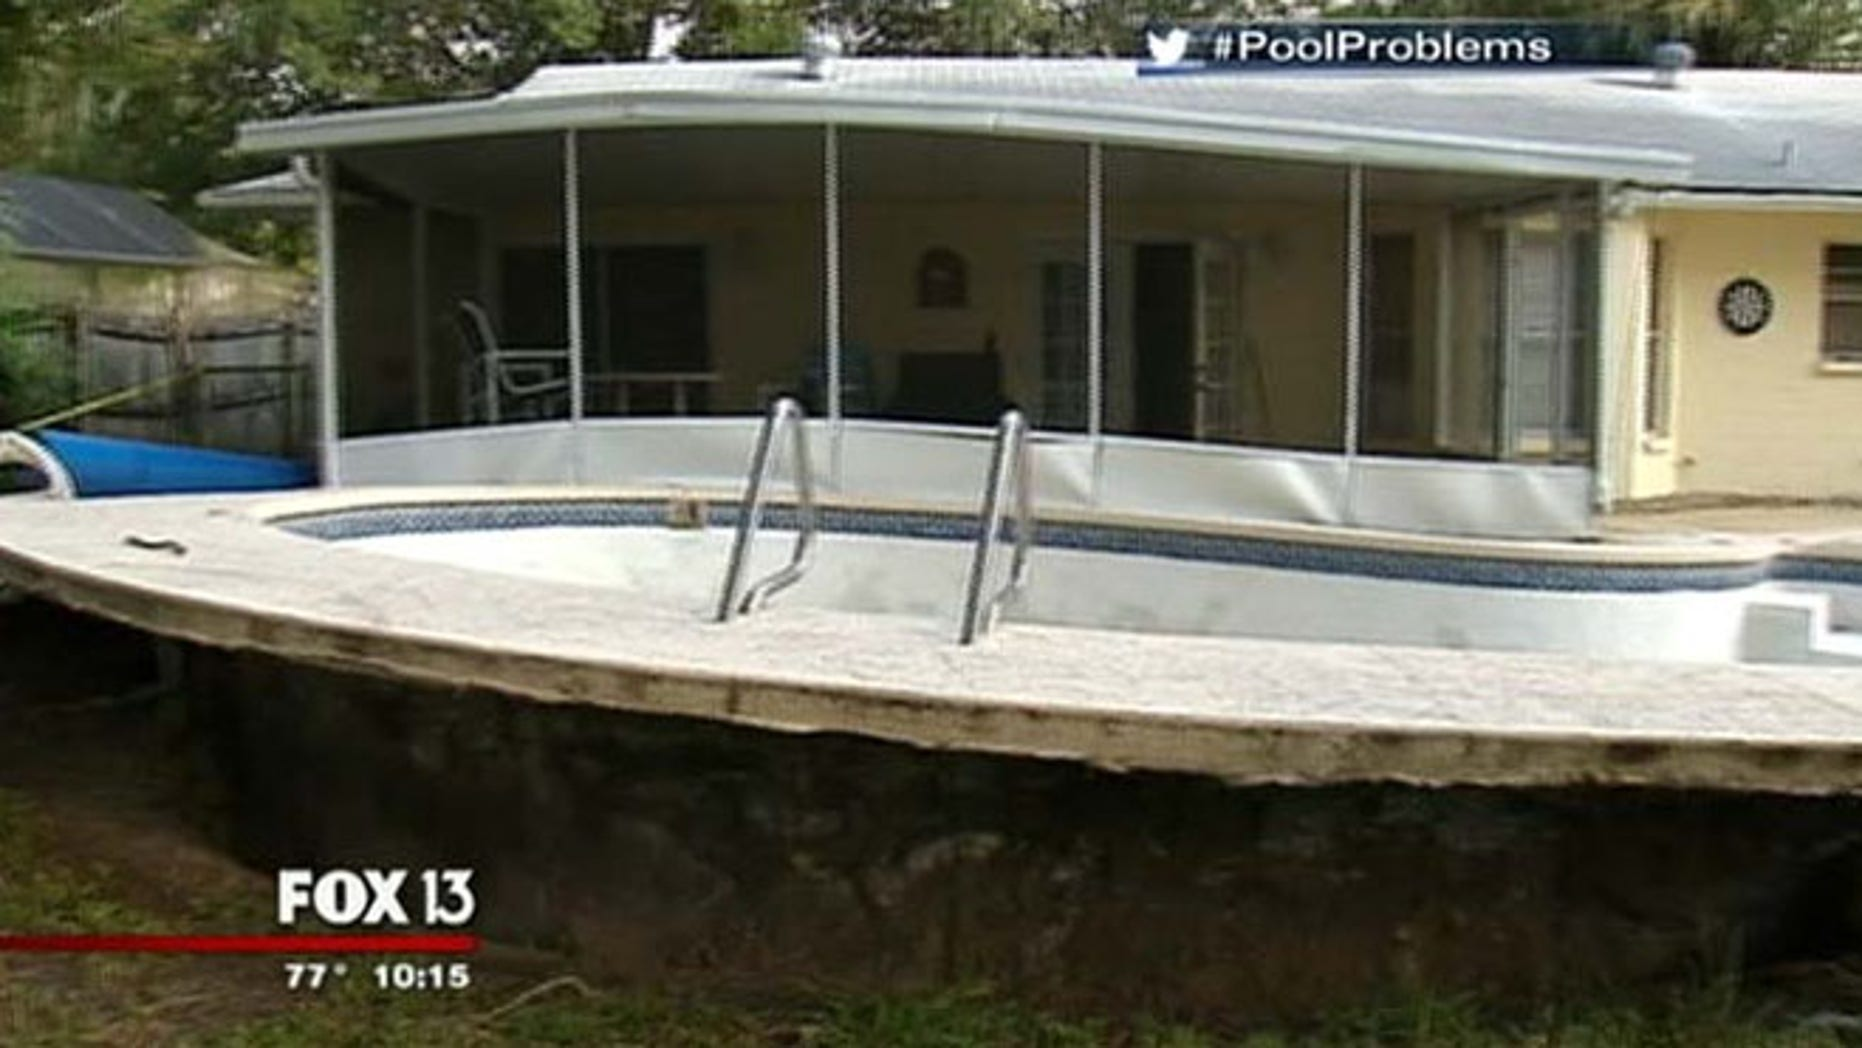 Jessica Pedraza says she drained her pool on Sunday. When they returned to the home on Monday night, they saw the pool jutting out of the dirt.